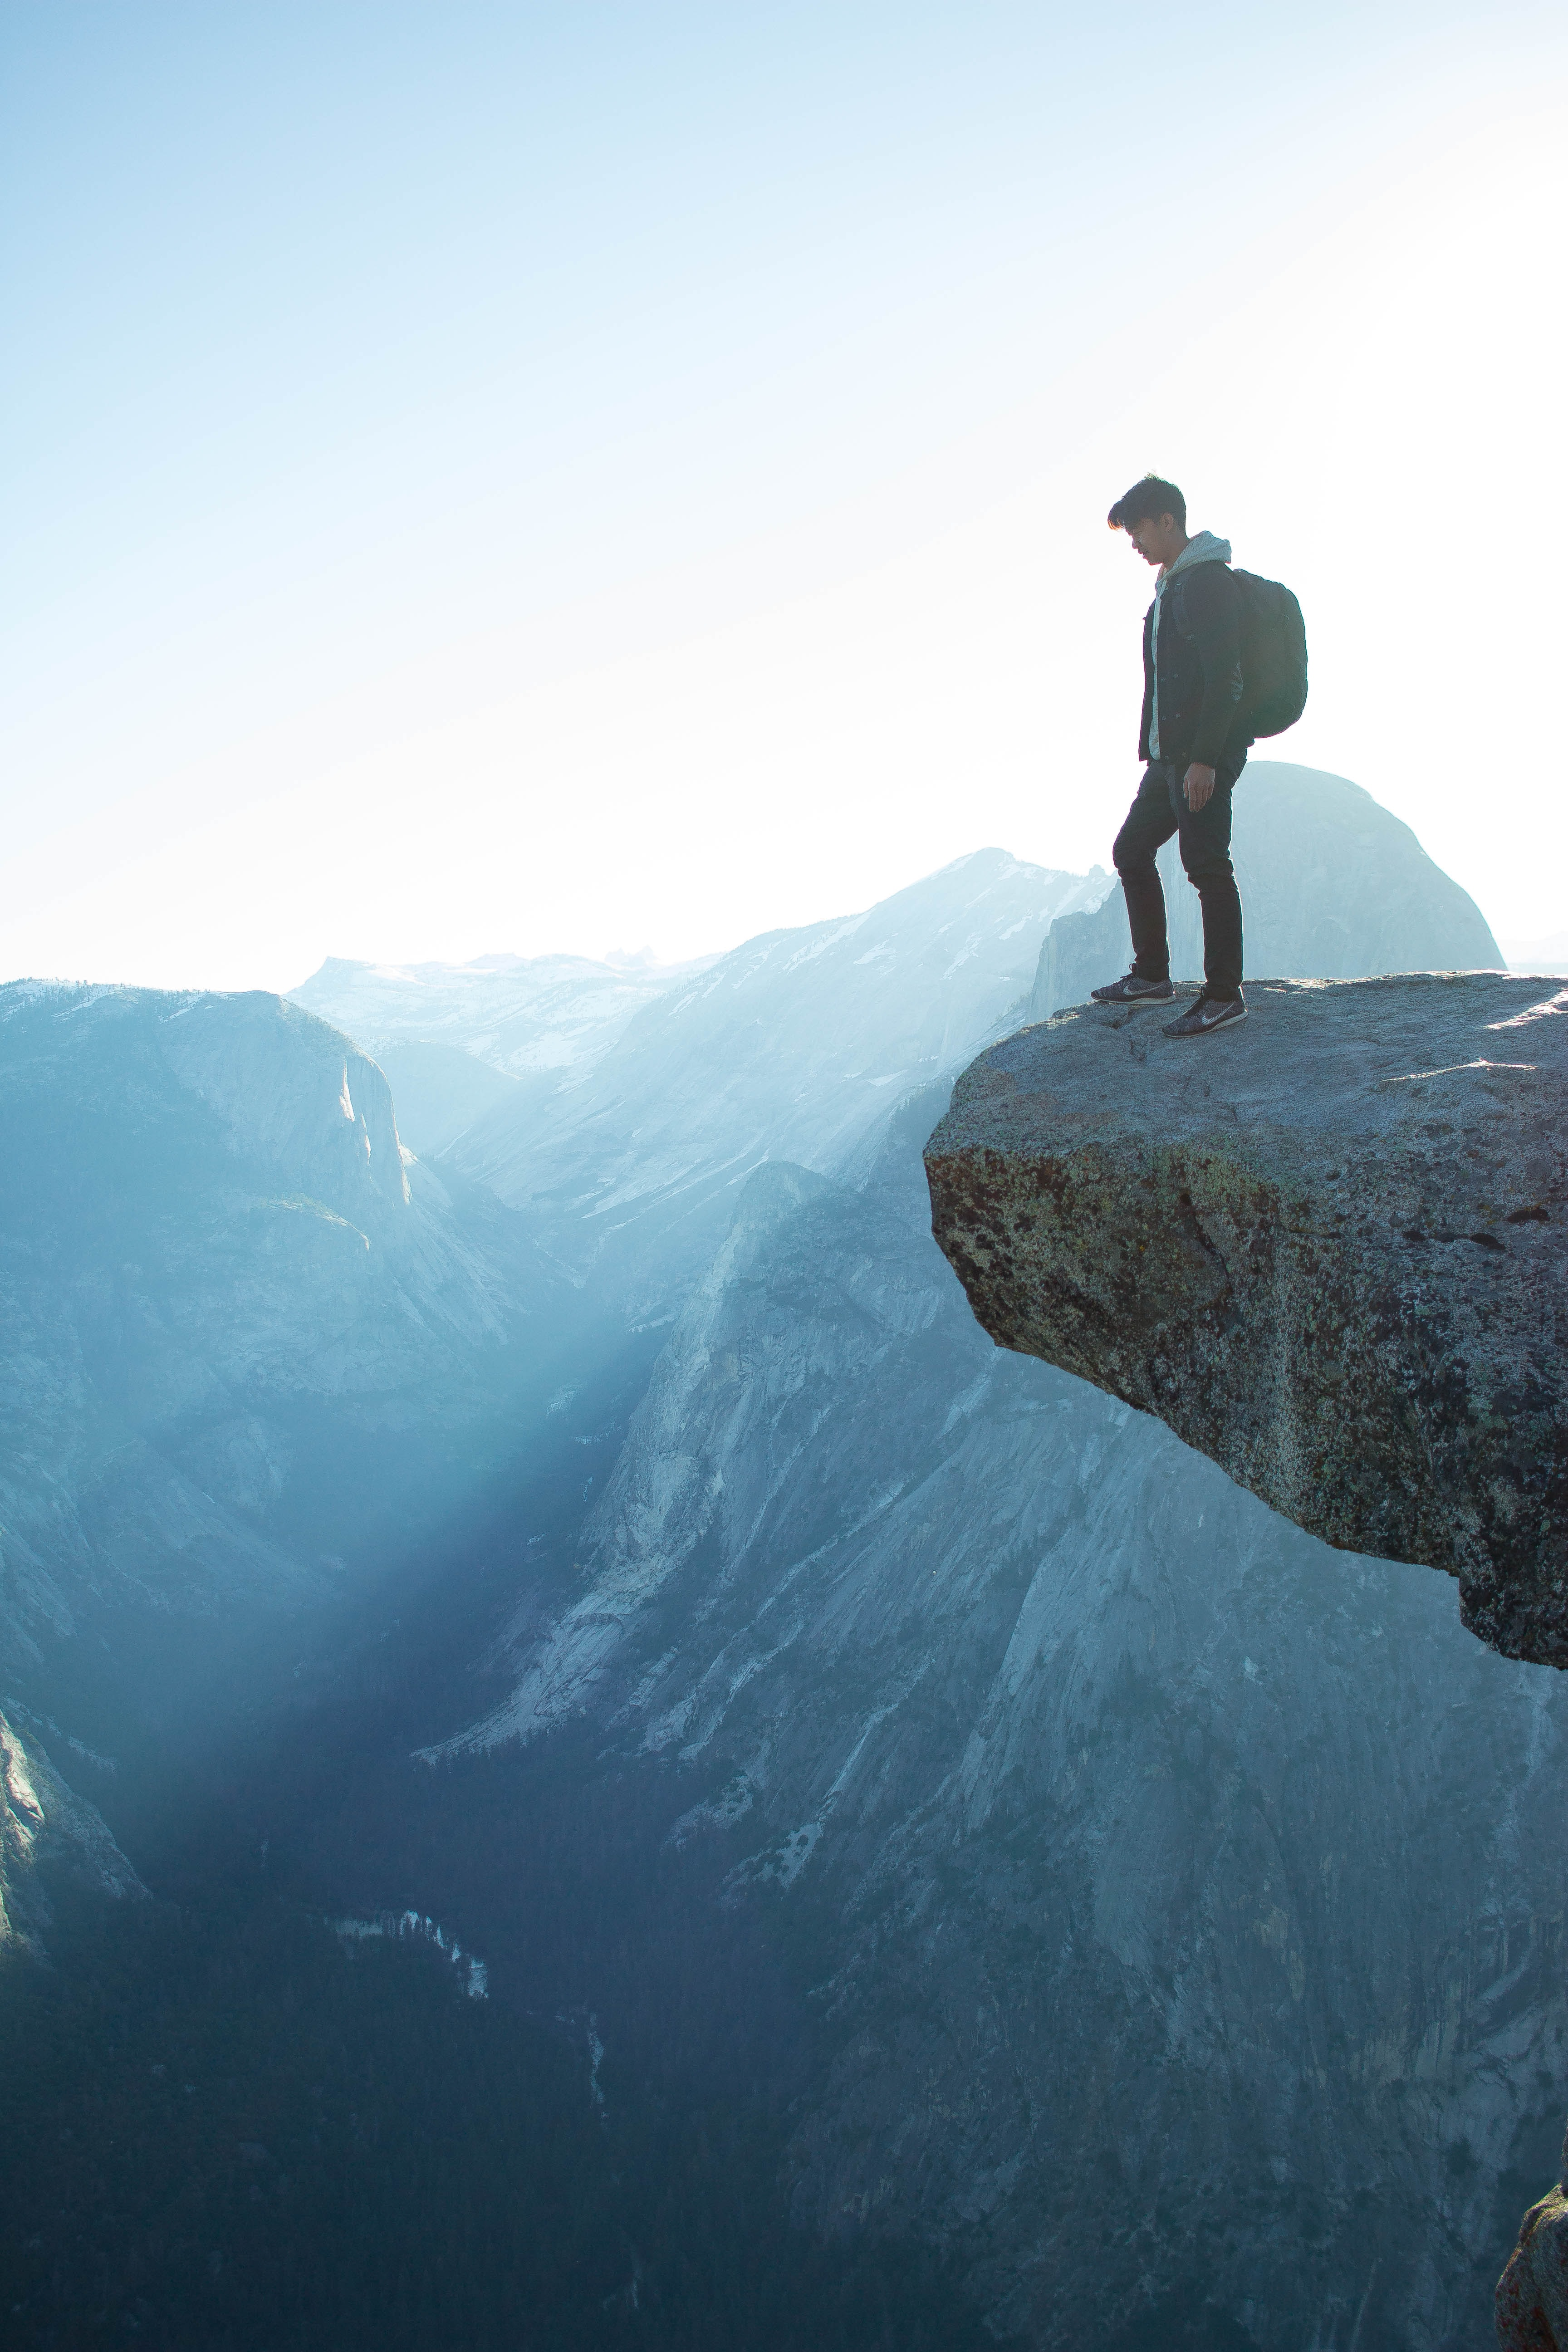 A man with a backpack approaching the edge of a ledge over a precipice